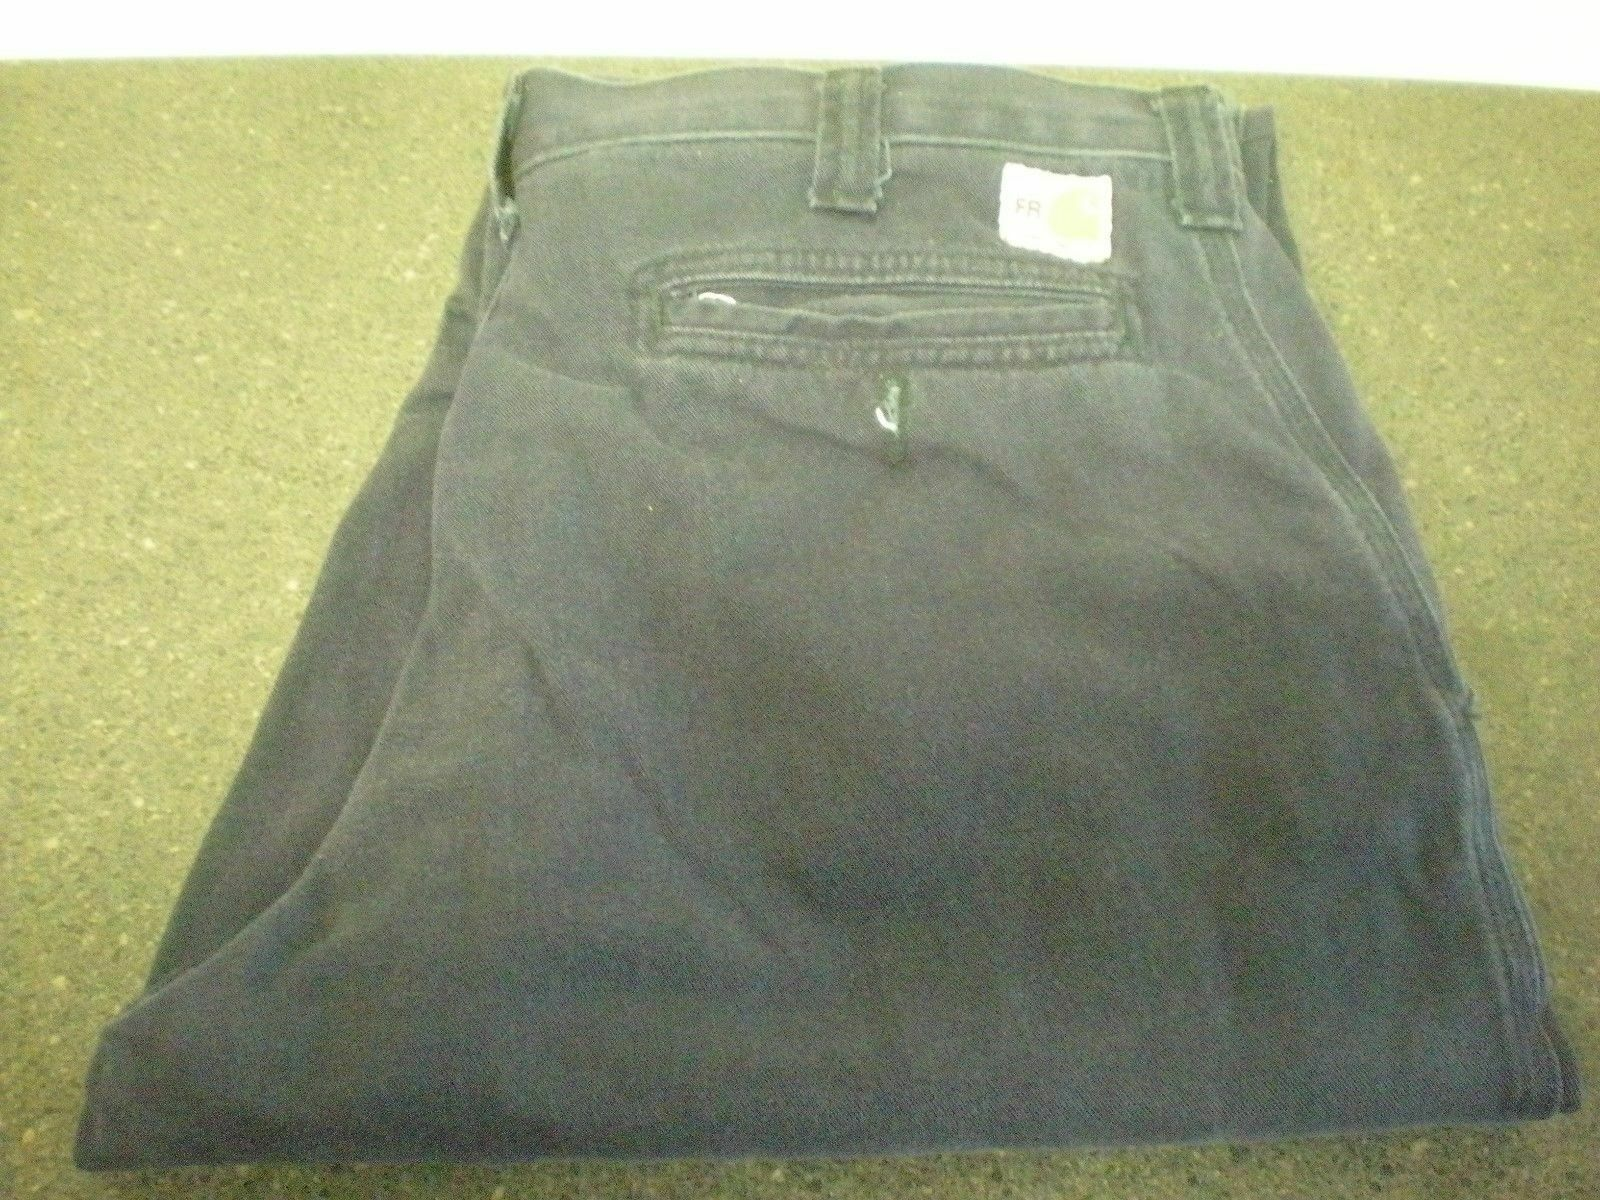 2 Carhartt FR Navy bluee Pants (371-20) Relaxed Fit 34X30 (VG Condition)